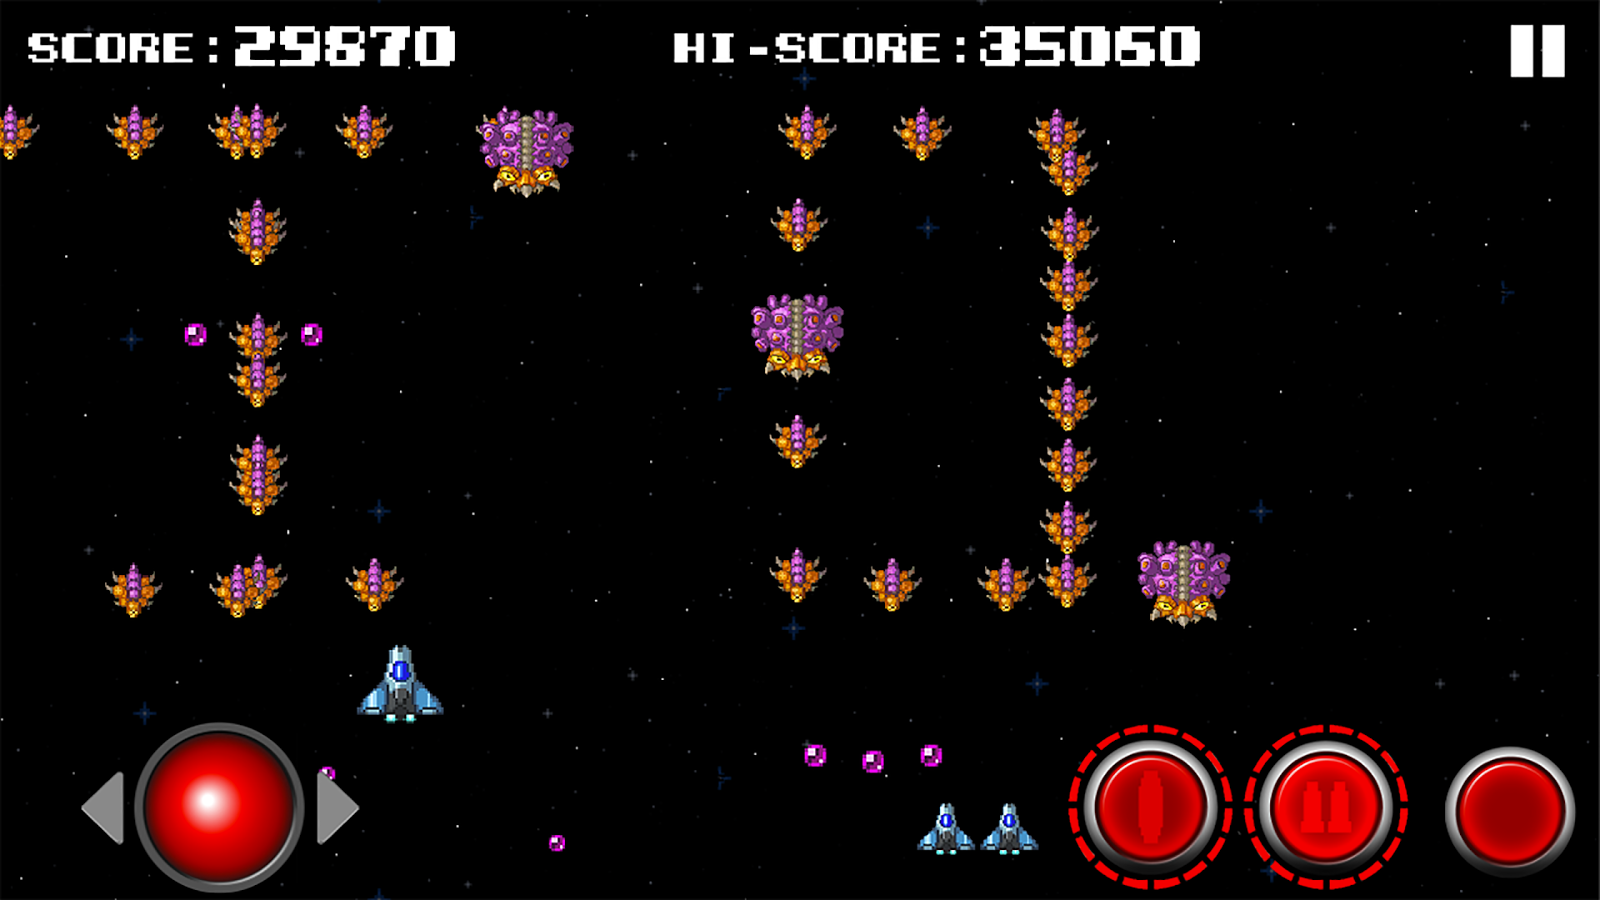 SpaceShips Games: The Invaders- screenshot